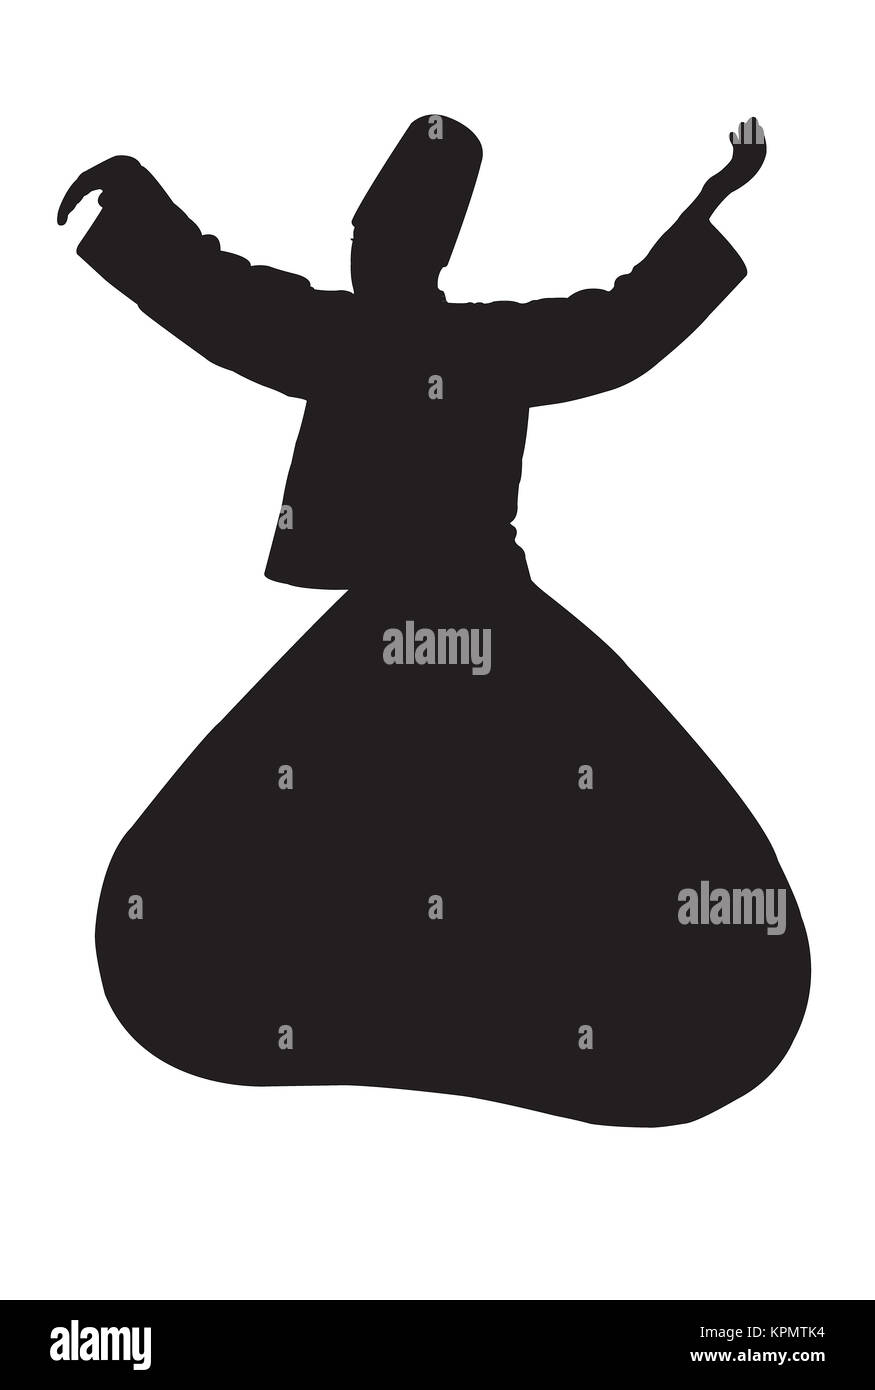 whirling dervish silhouette - Stock Image